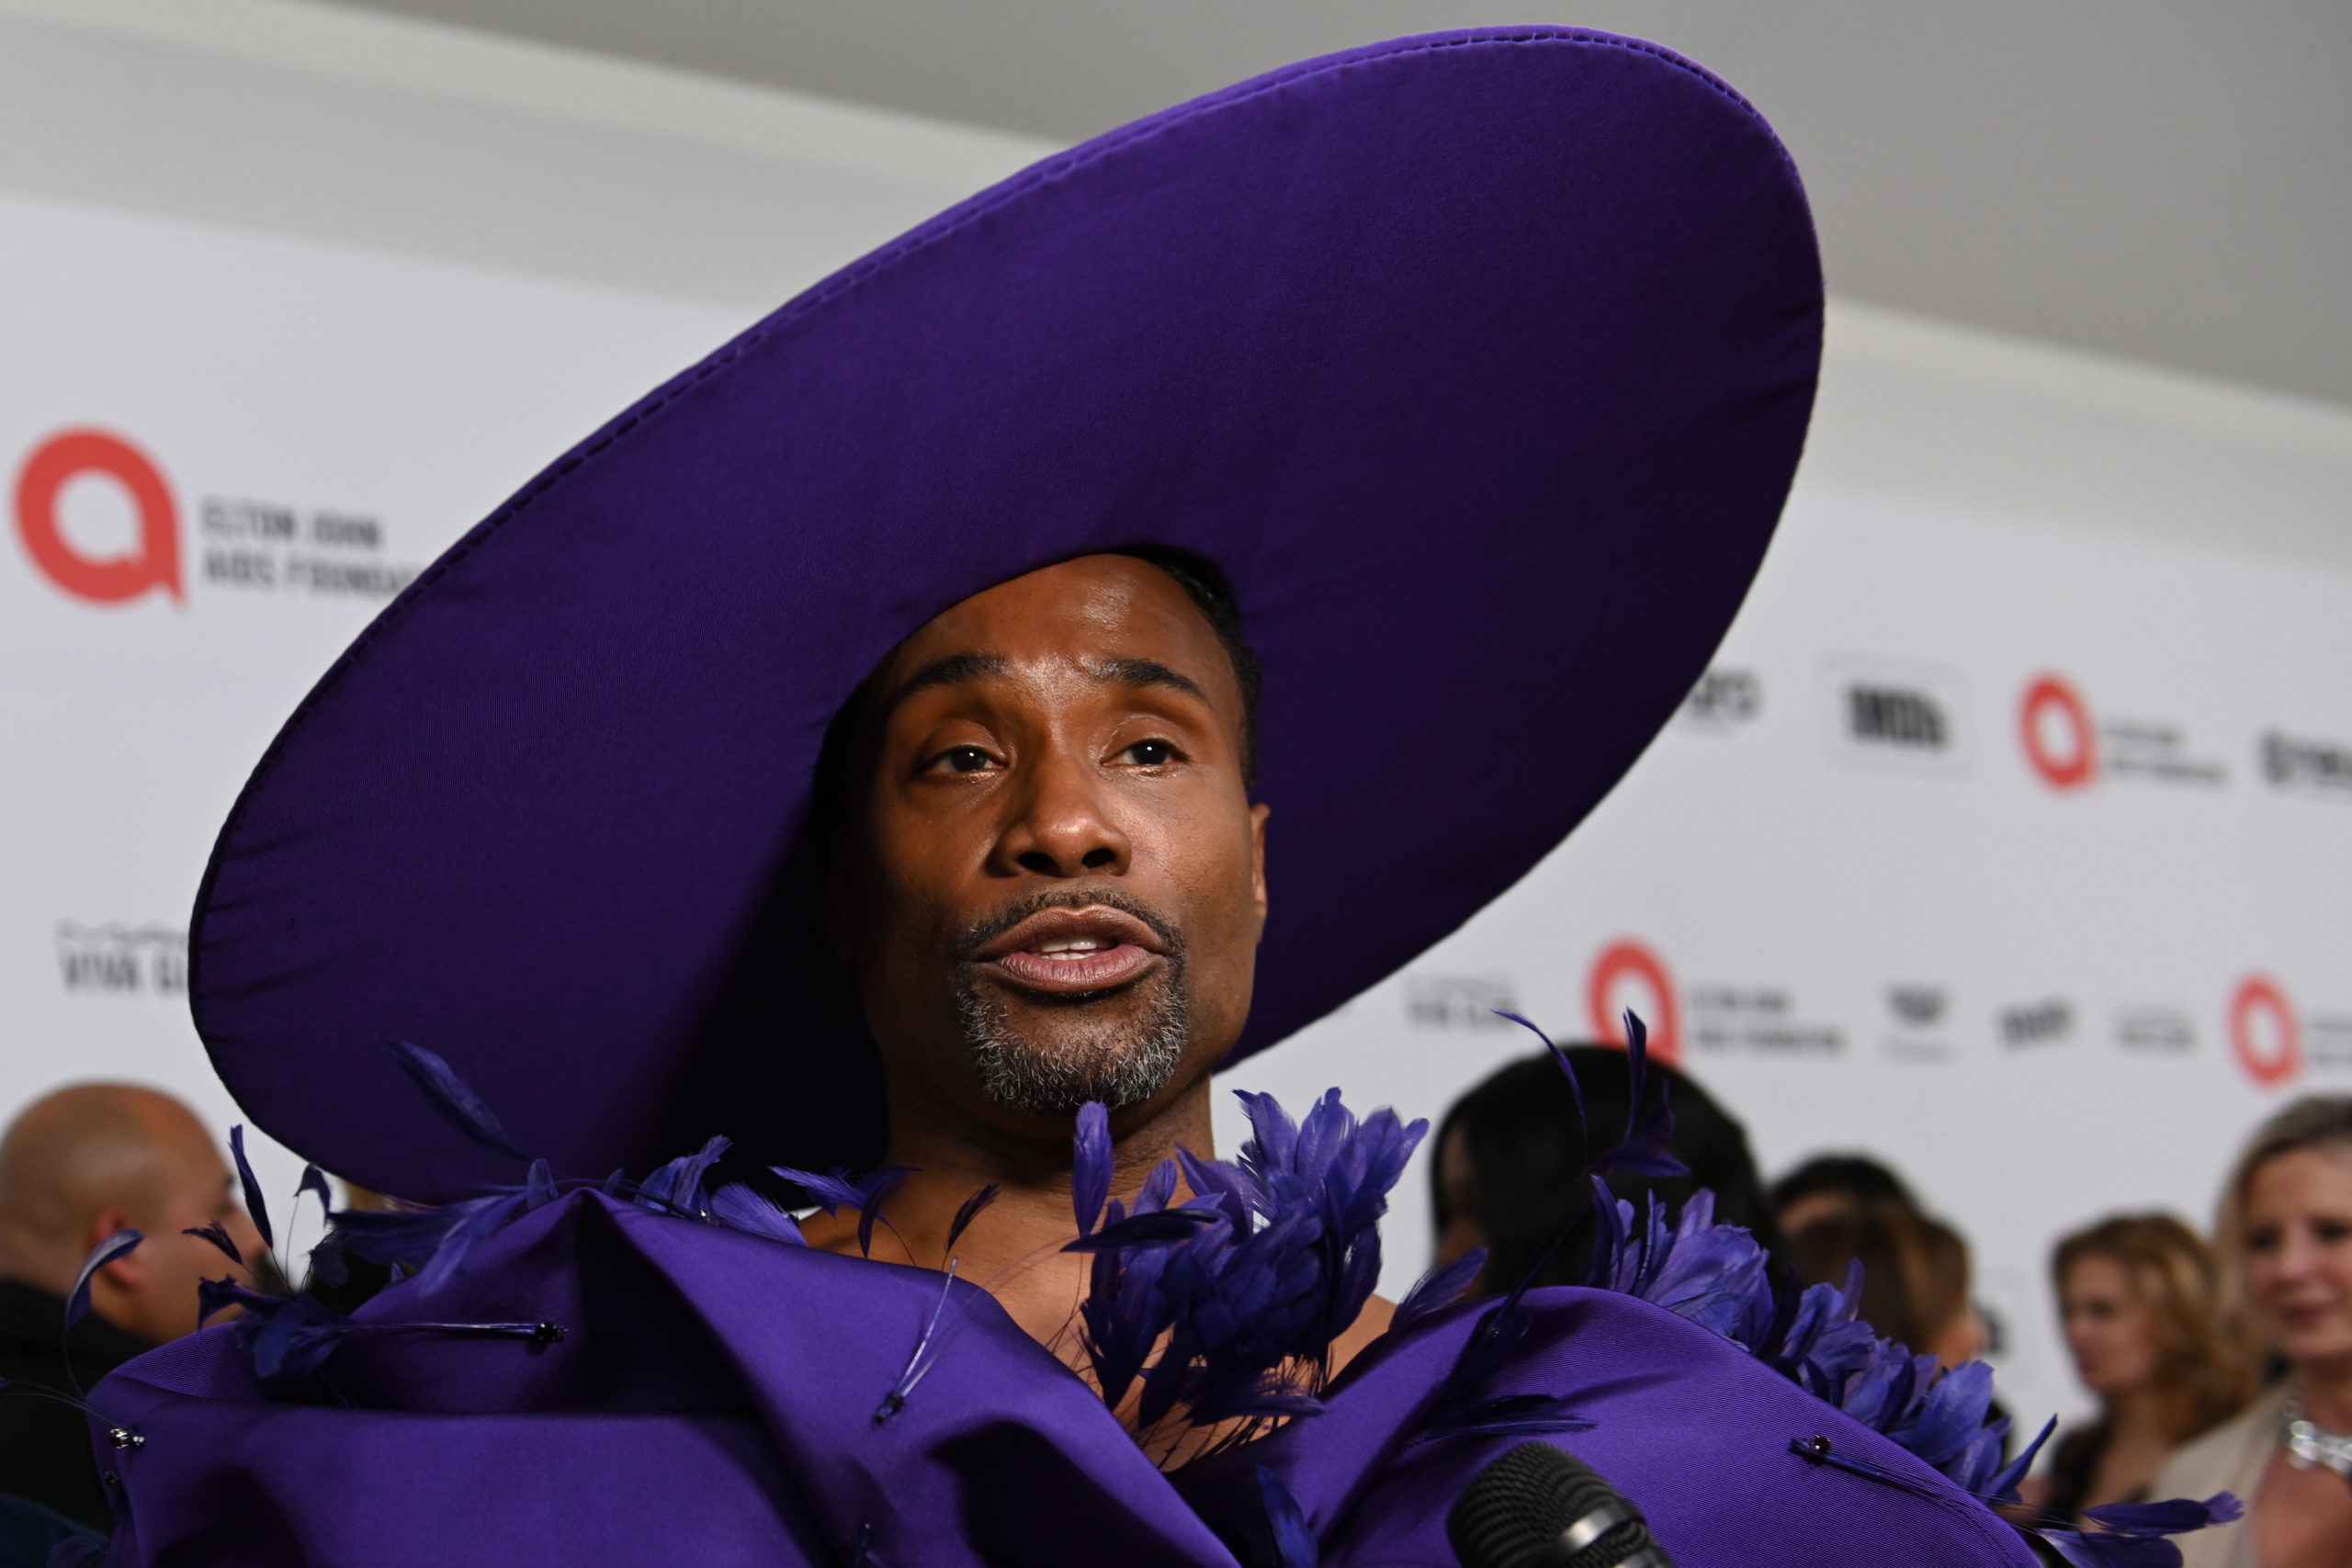 FEBRUARY 09, 2020: Billy Porter walks the red carpet at the Elton John AIDS Foundation Party on February 09, 2020 in Los Angeles, California.